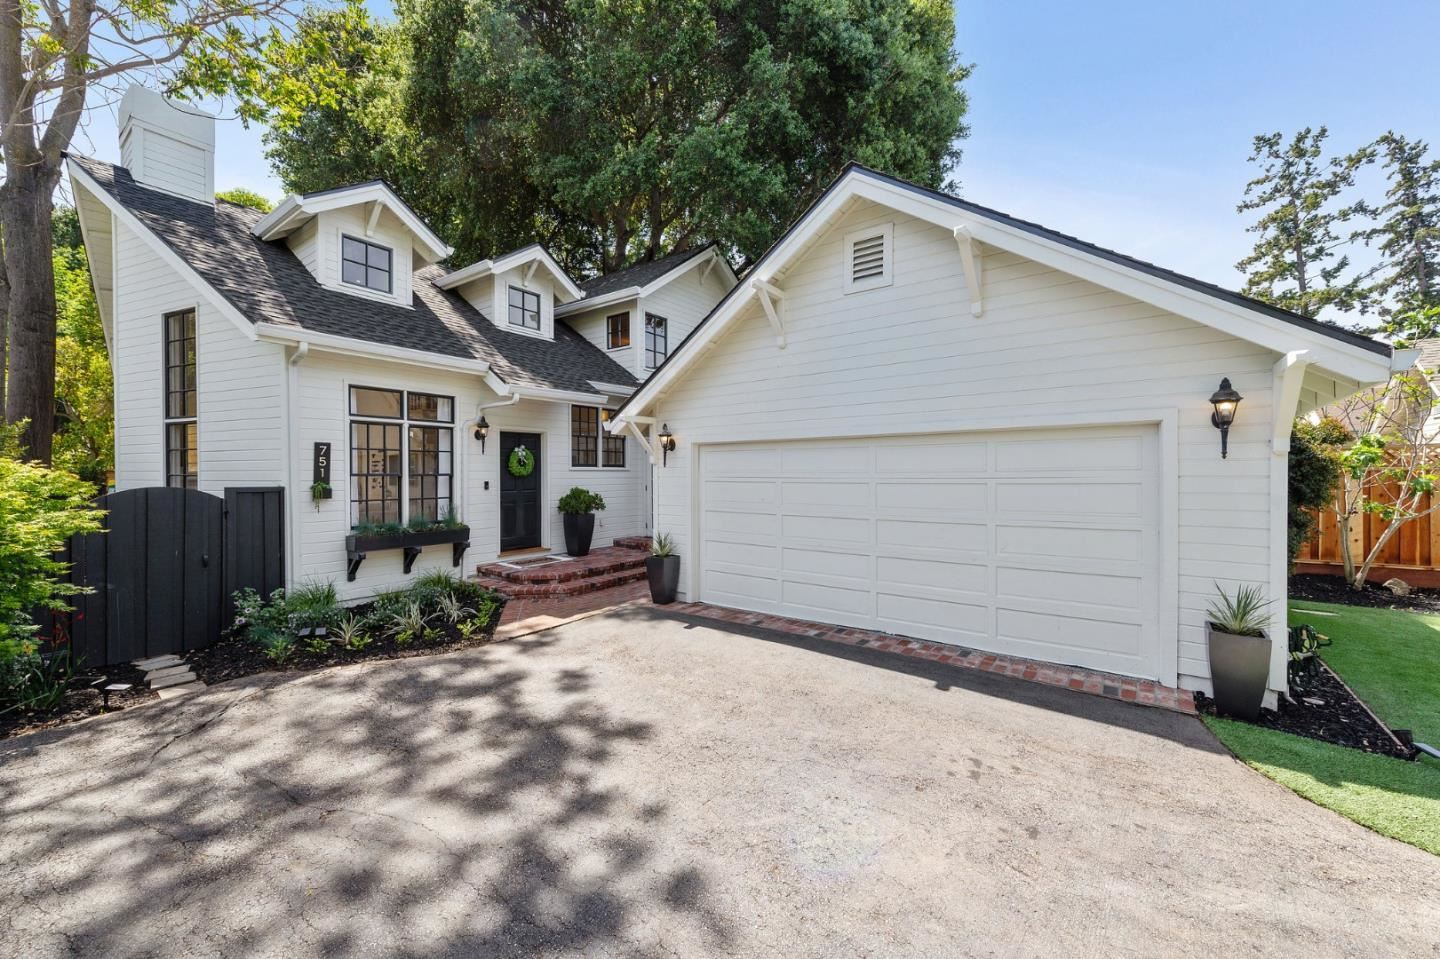 Photo for 751 Partridge Avenue, MENLO PARK, CA 94025 (MLS # ML81842096)